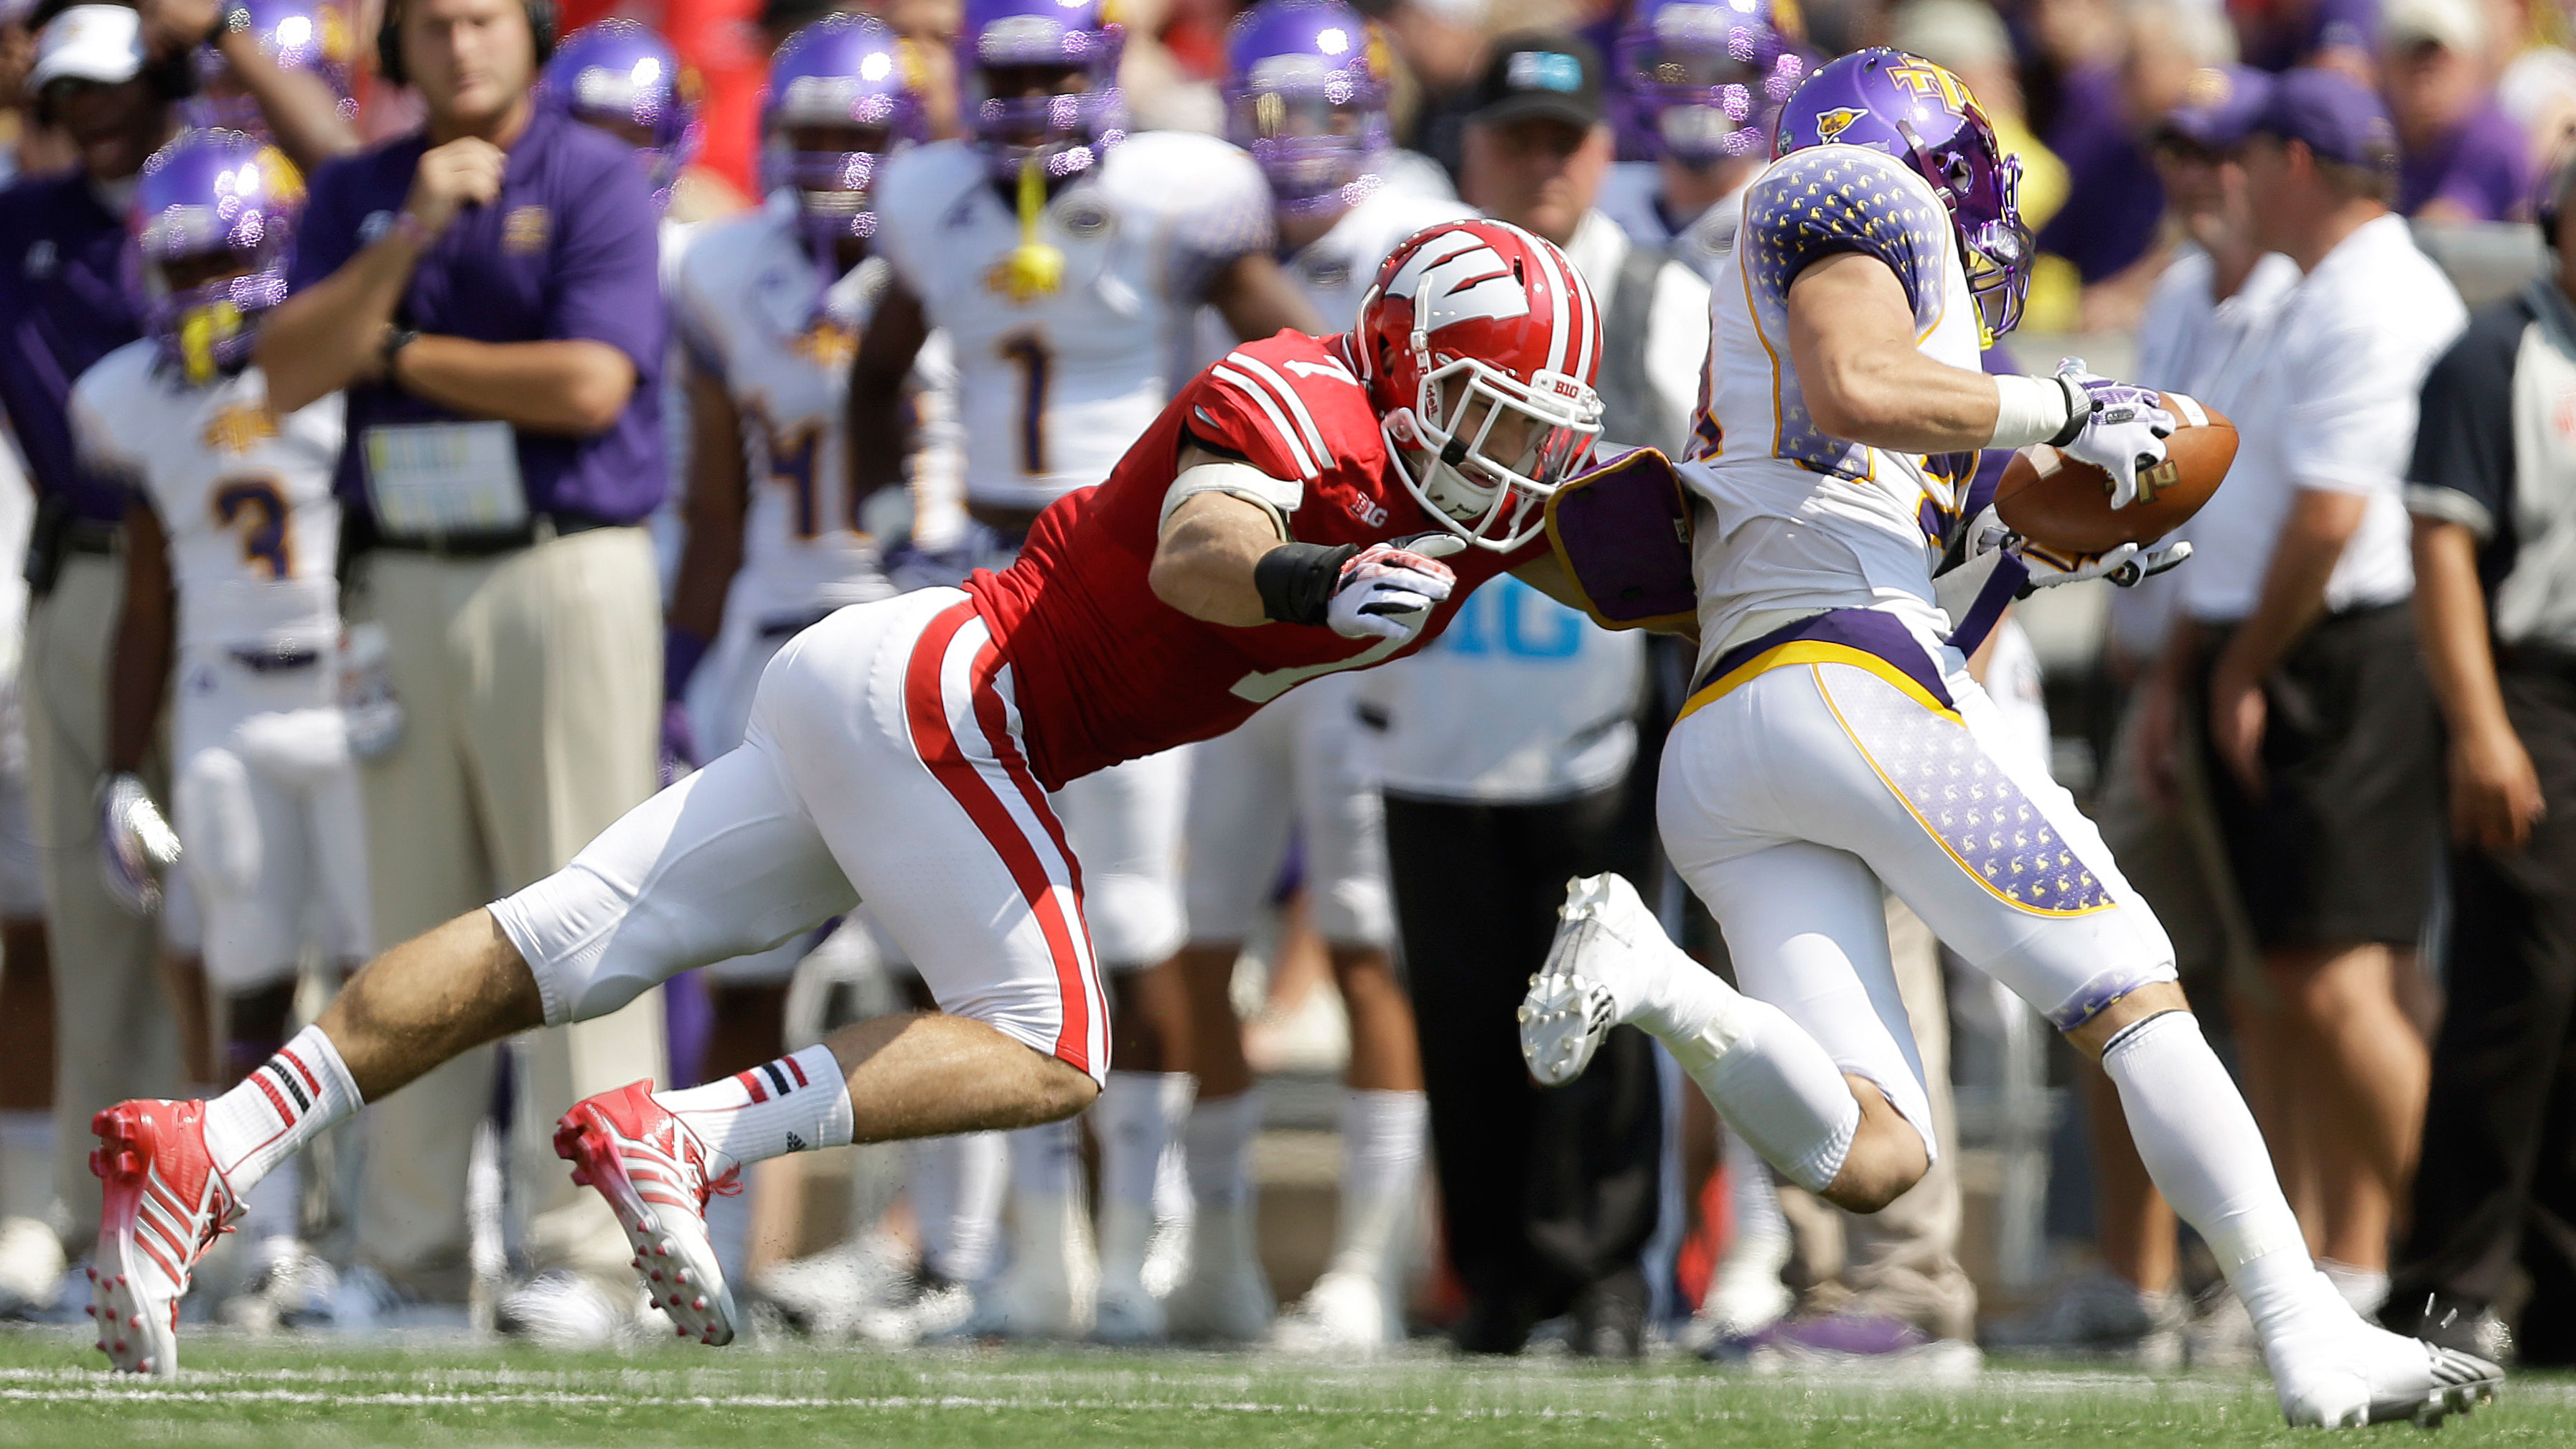 Wisconsin's Mike Caputo makes a tackle against Tennessee Tech in 2013.